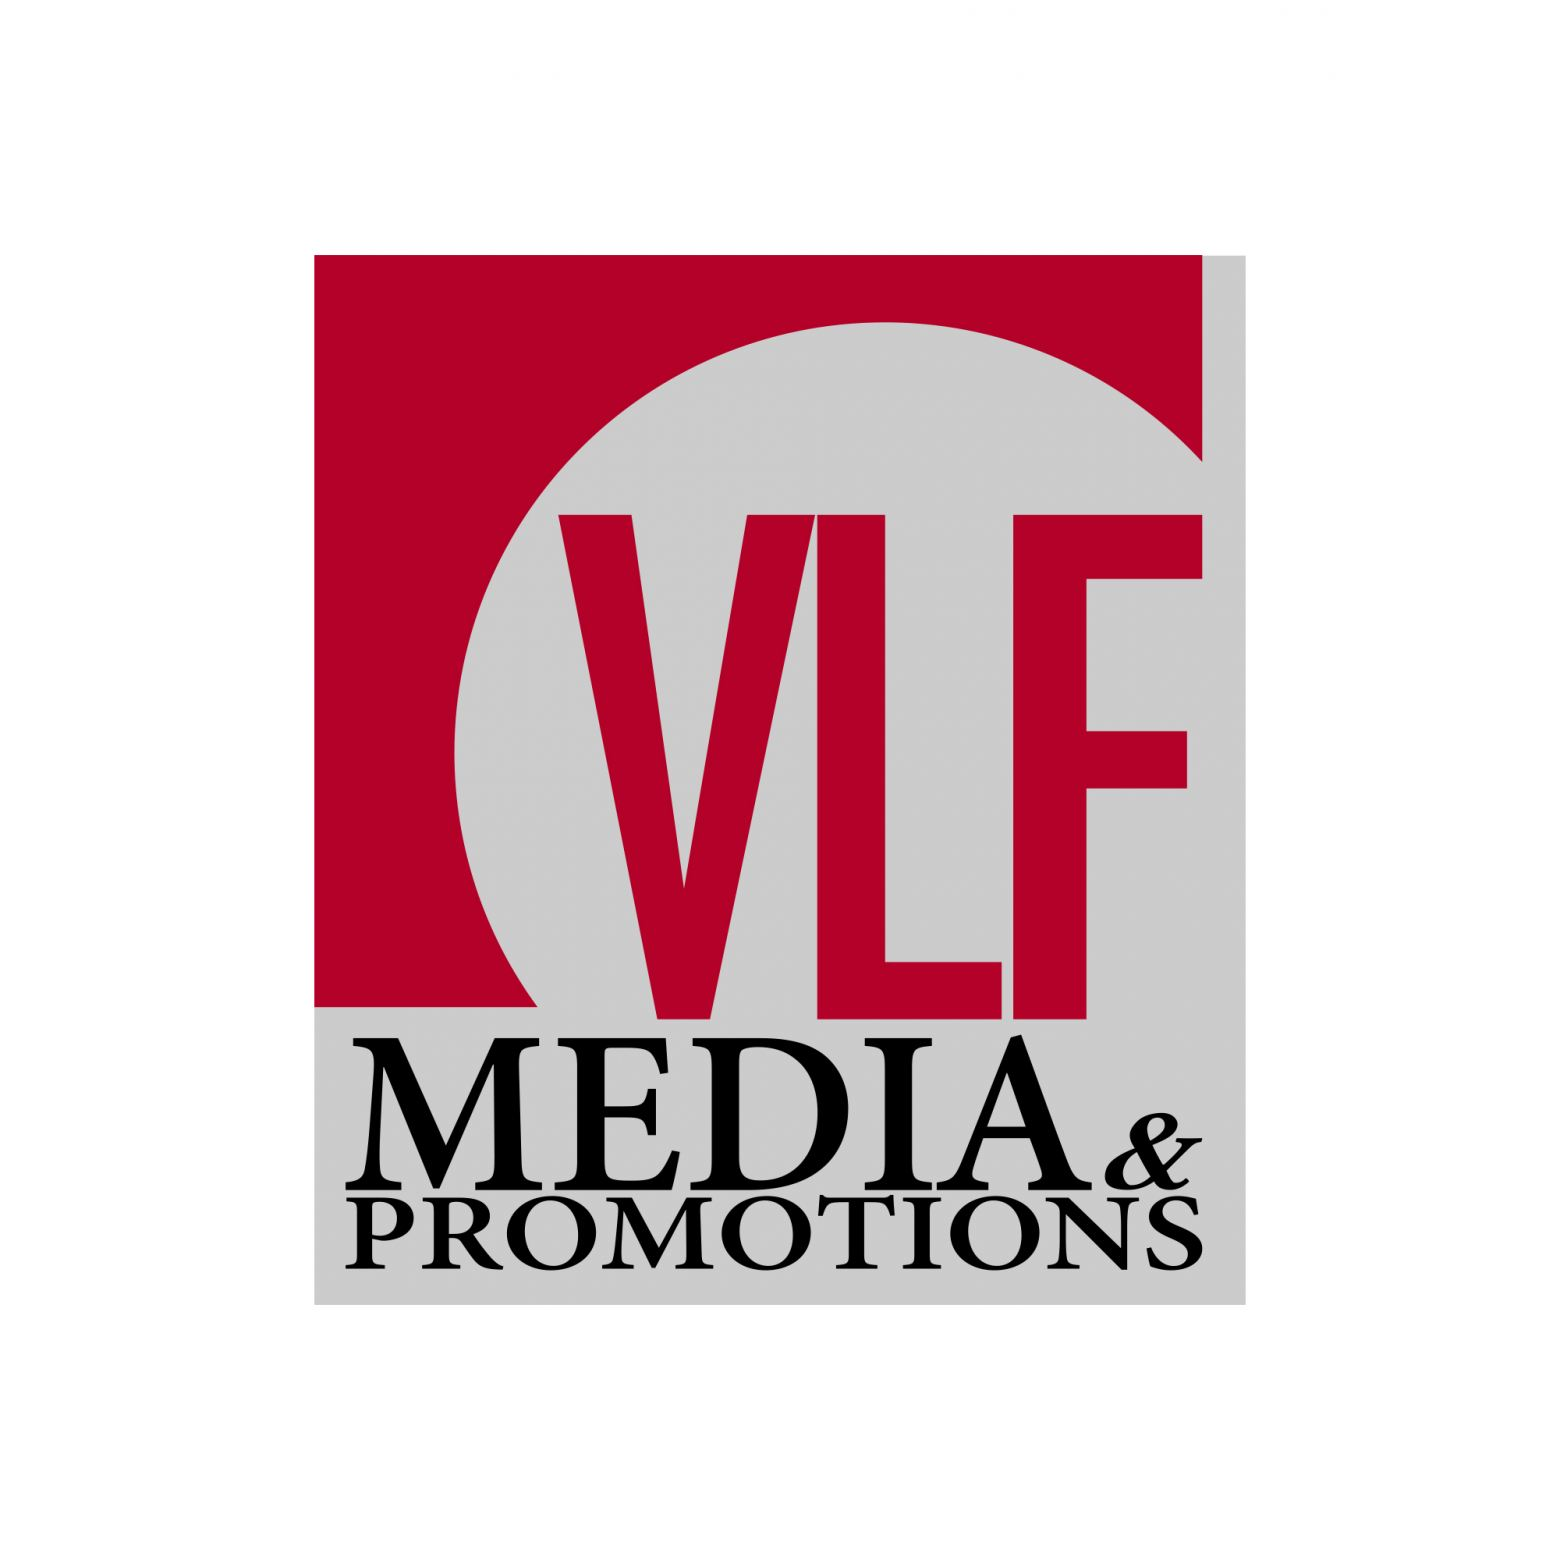 VLF Media & Promotions Logo